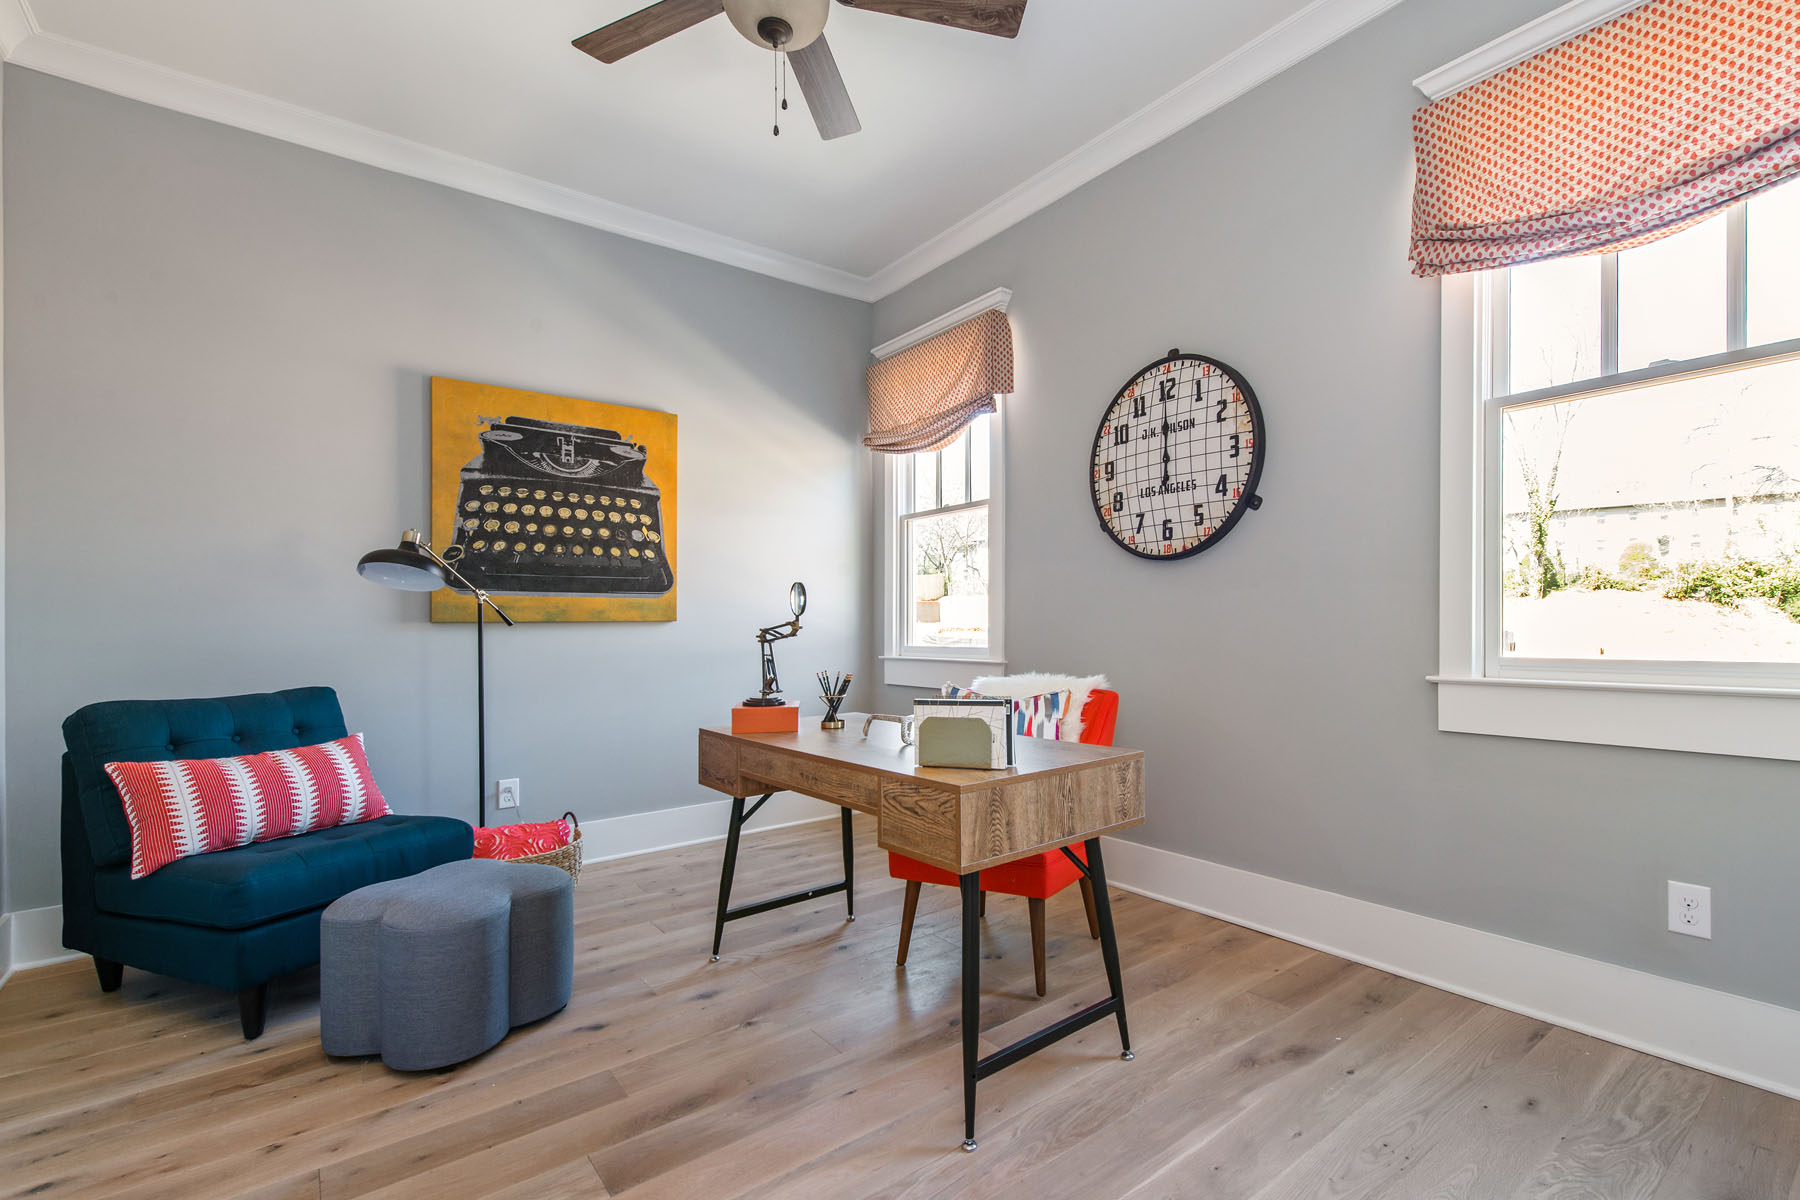 Additional photo for property listing at A Community of 36 Cottages Built by Renowned Thrive Homes 2820 Craigie Avenue Unit 22 Decatur, Georgia 30030 United States